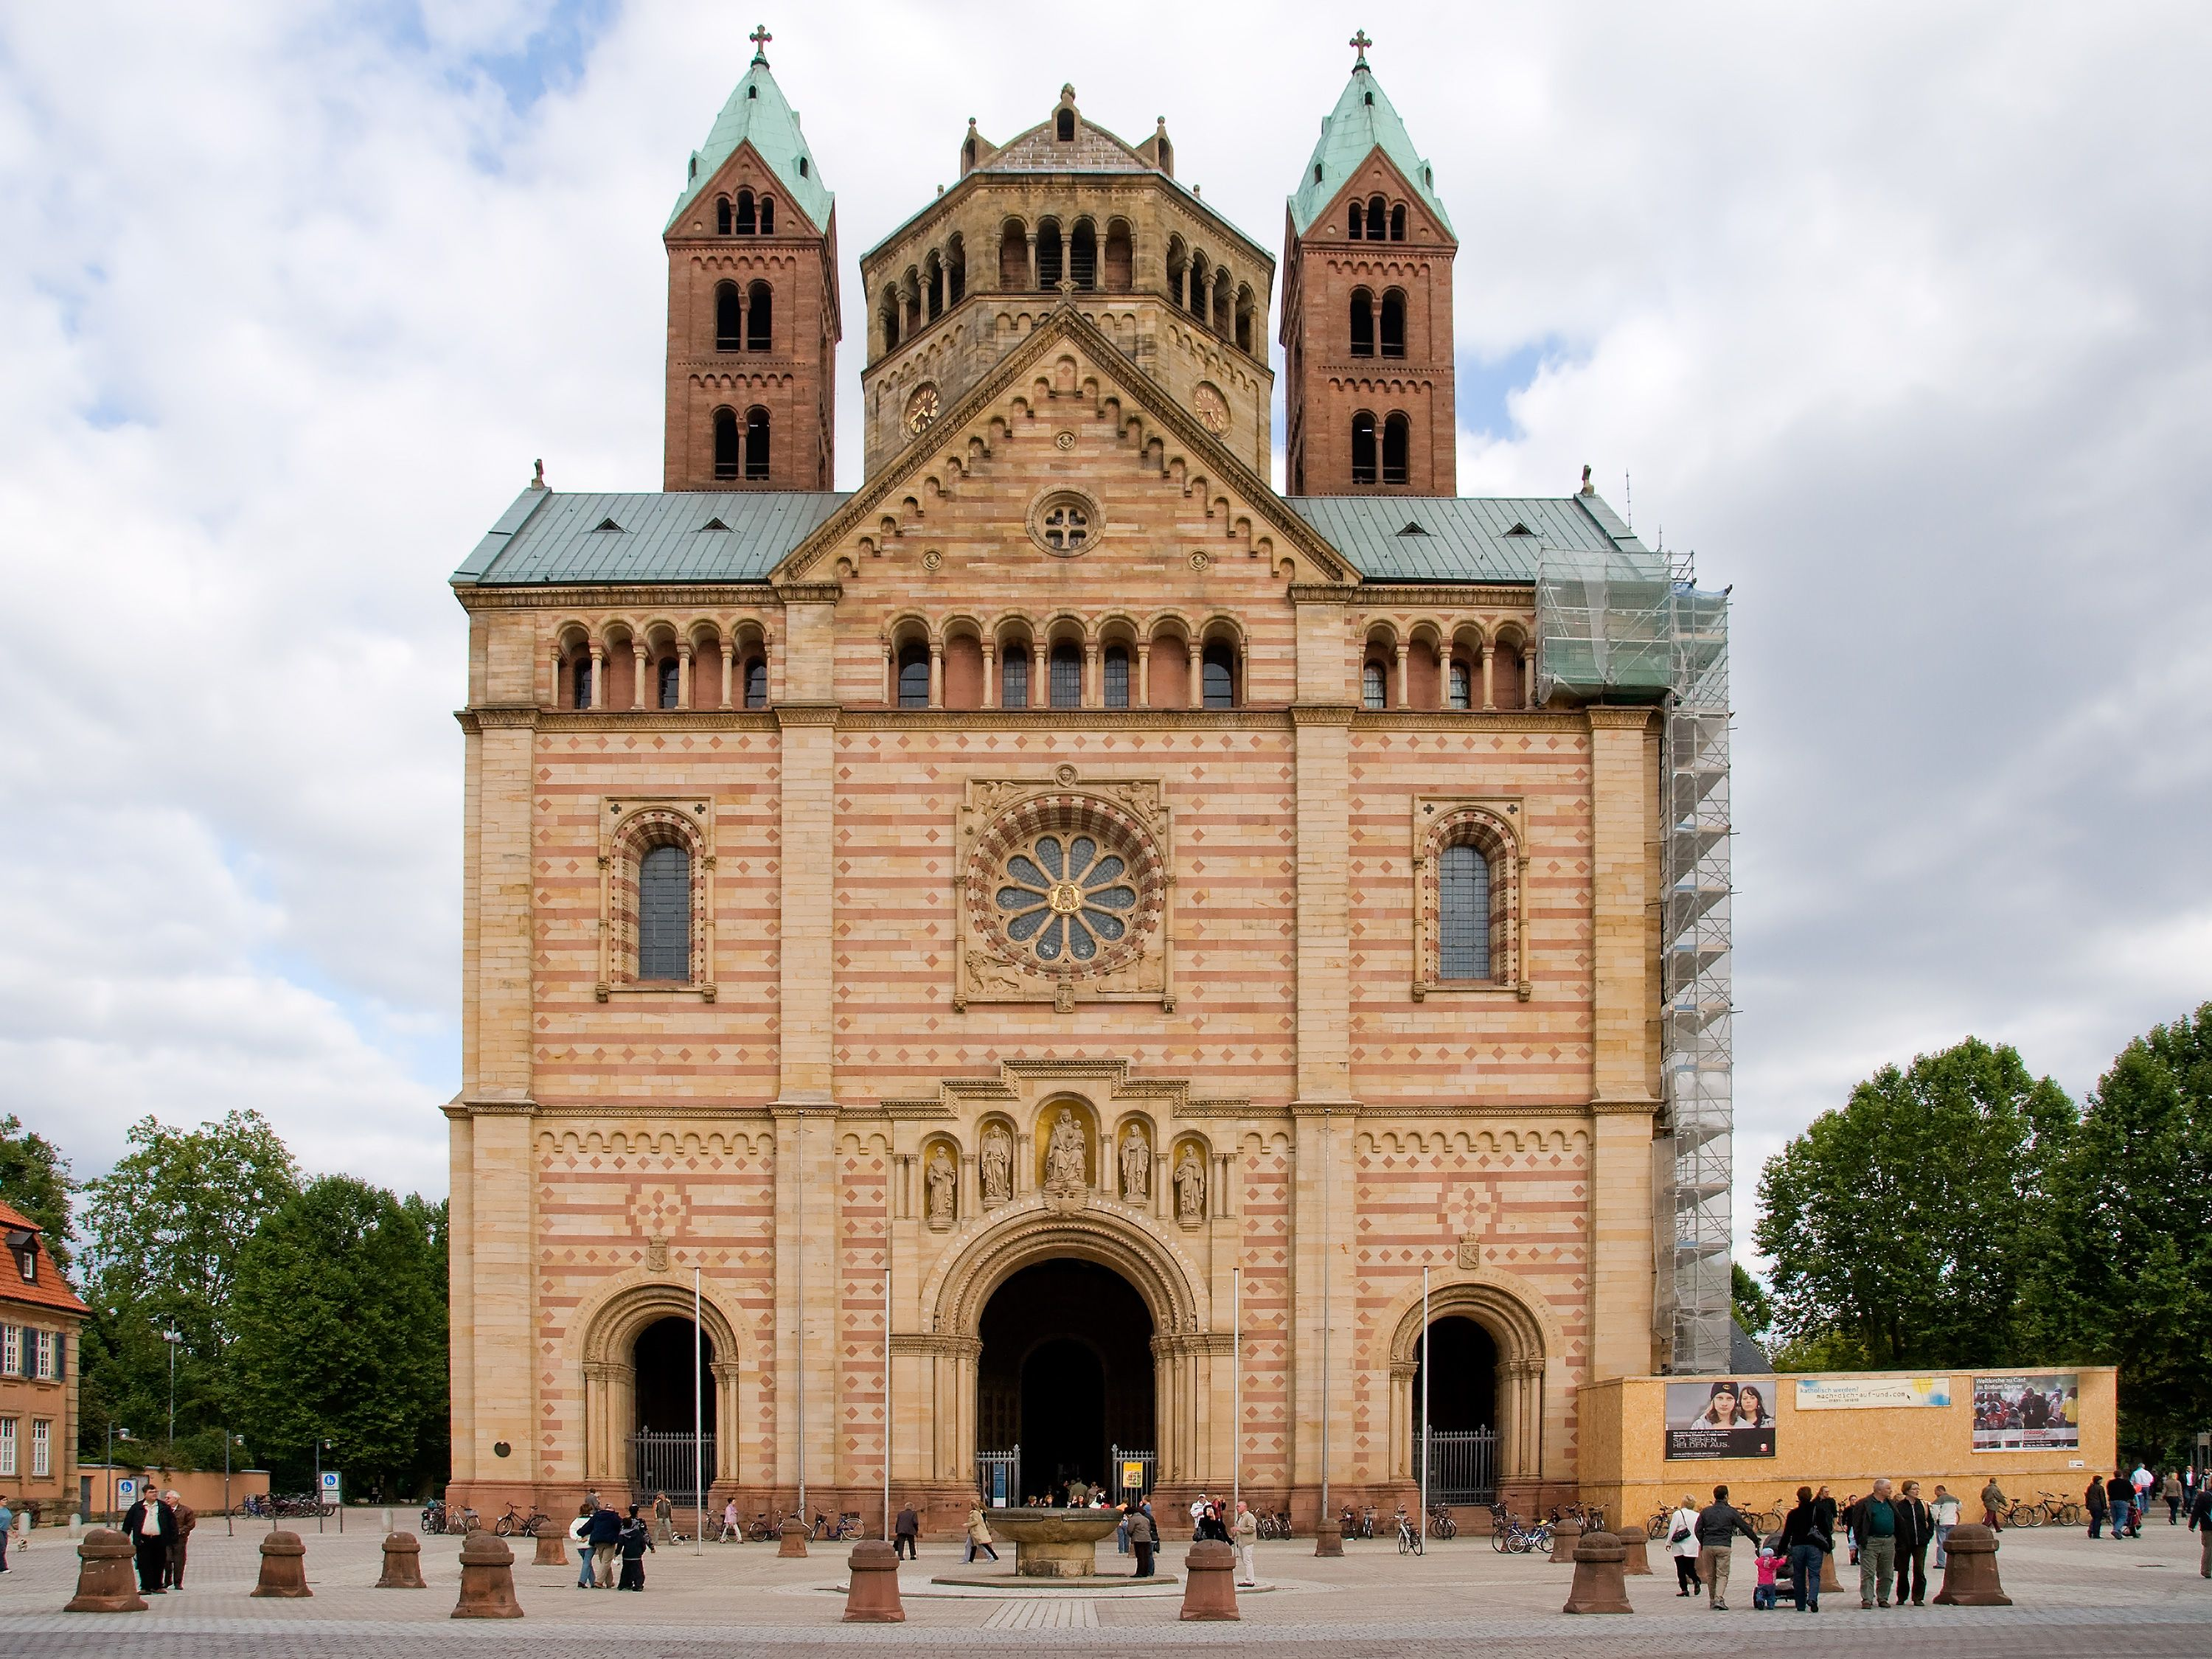 Romanesque Architecture Speyer Cathedral Germany 1030 Bellevue College Interior Design